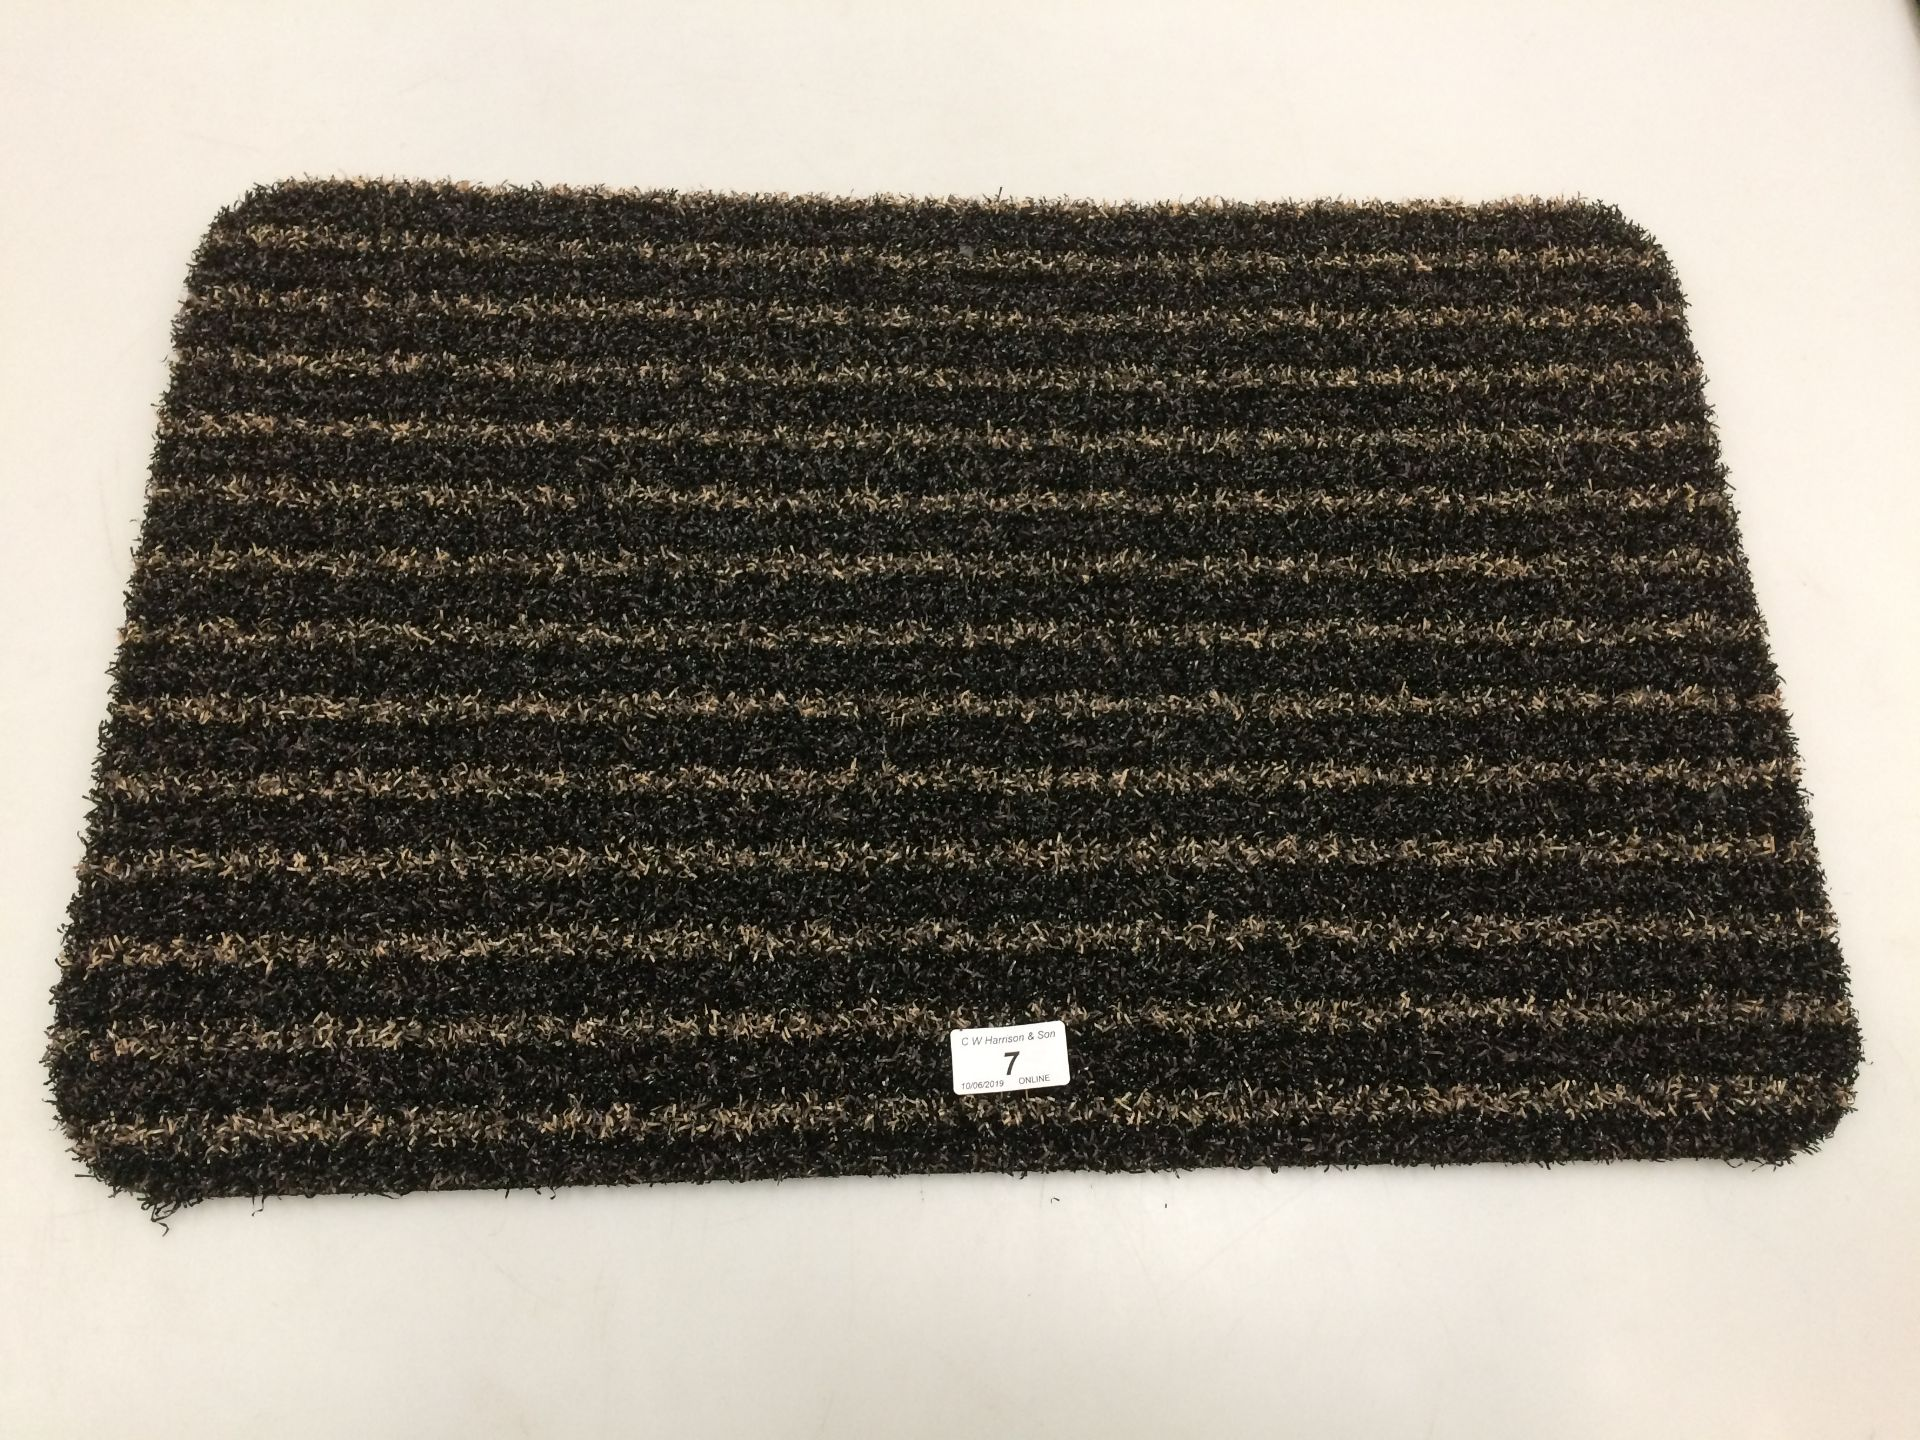 Lot 7 - 10 x black and gold striped door mats with rubber anti-slip inlay each 40 x 60cm